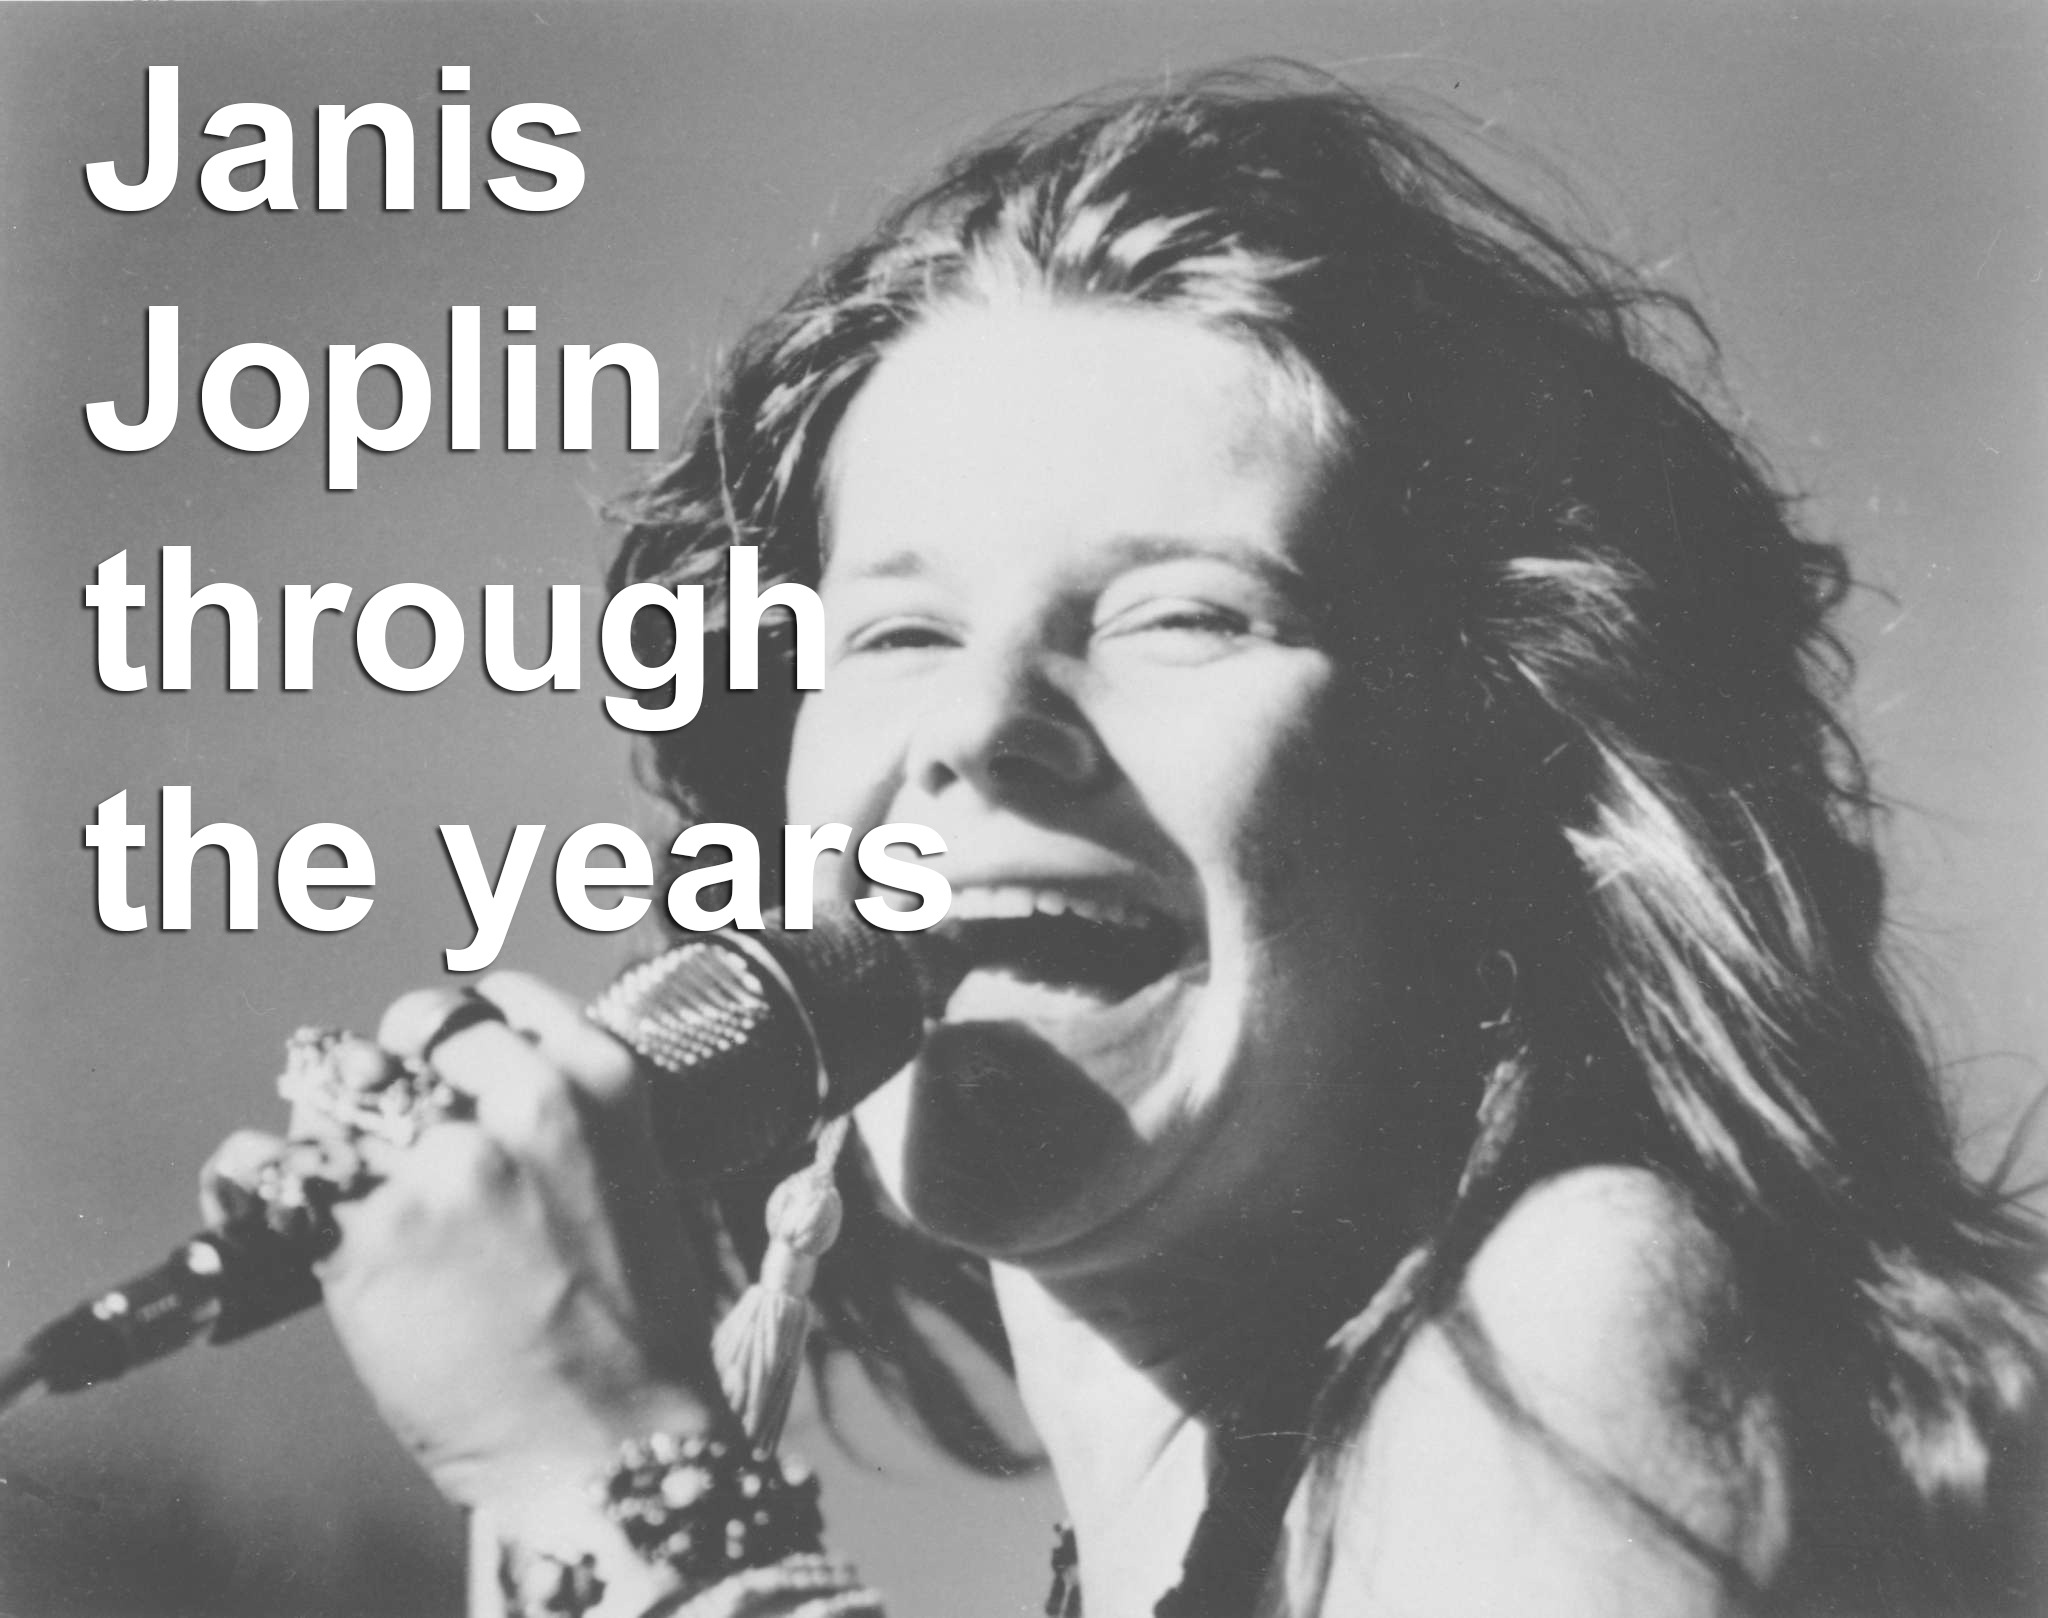 Threadgill's, texas venue that launched janis joplin's career, set to close